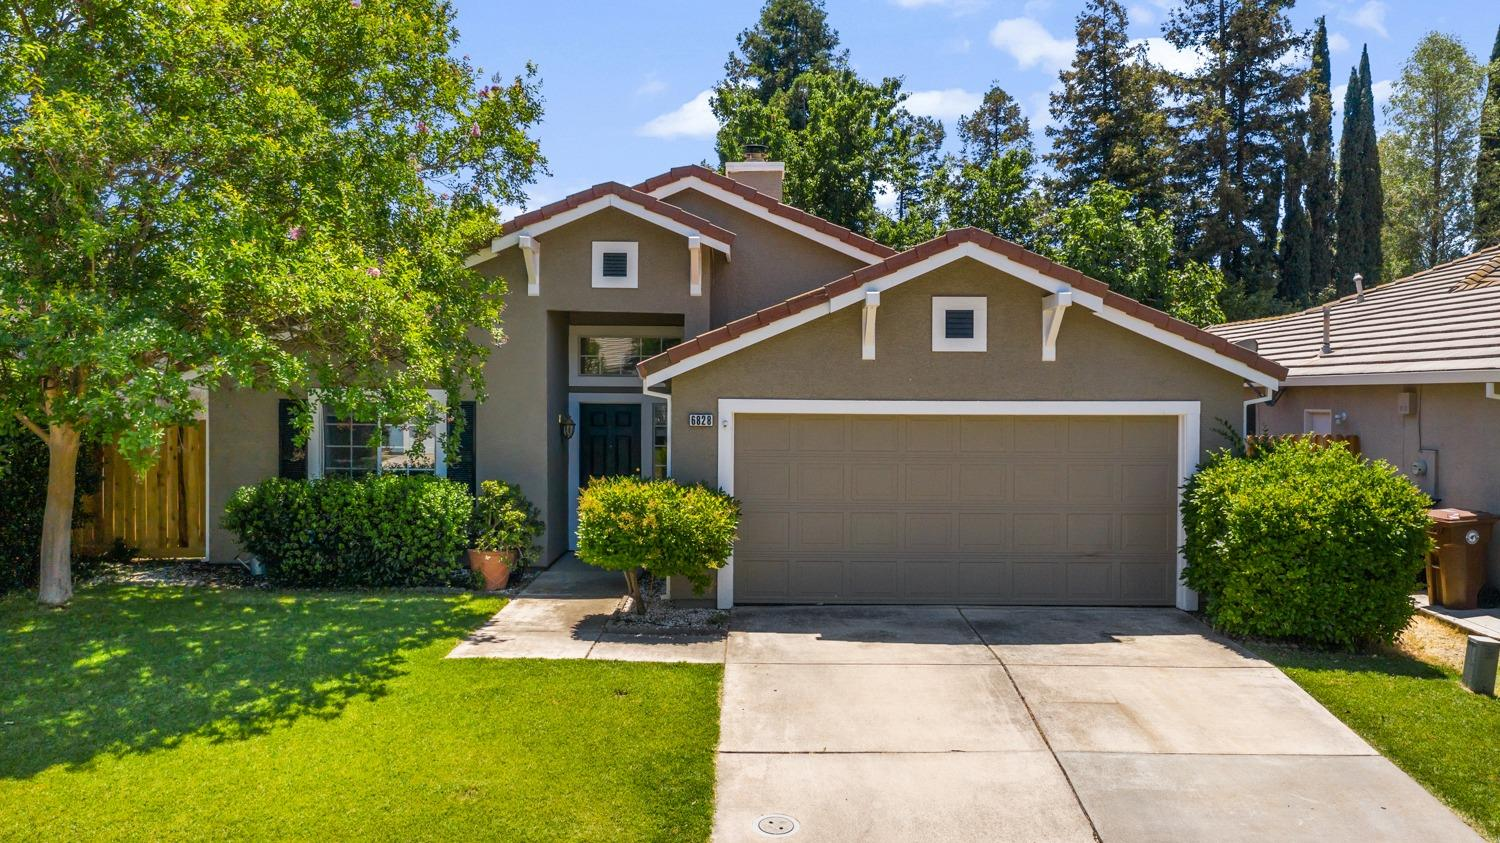 Cute and cozy Elk Grove dream home for first time homebuyers or investors. This 3 bedroom, 2 bath ho